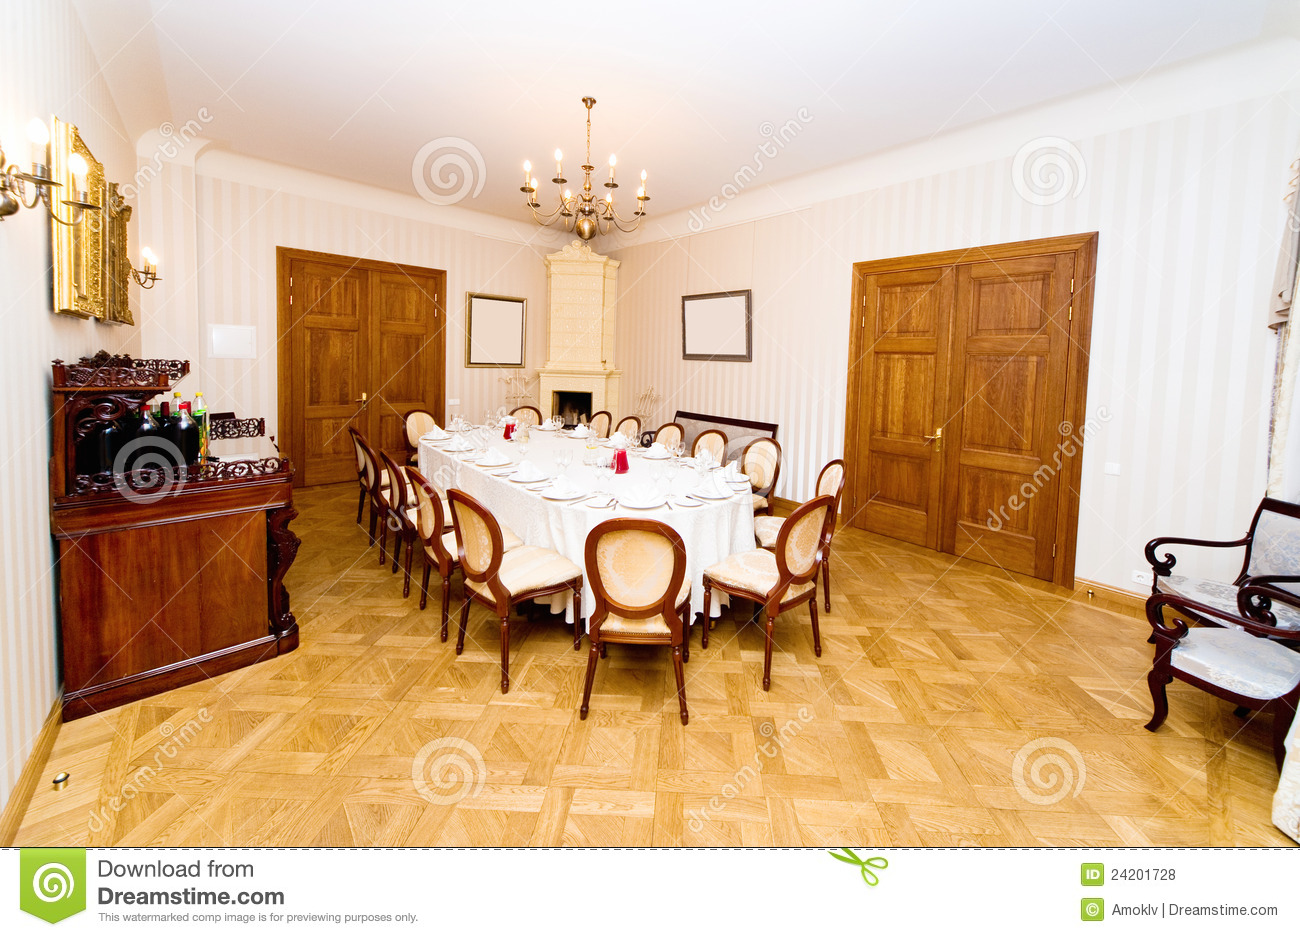 Vintage Style Dining Room Stock Photo Image Of Floor 24201728